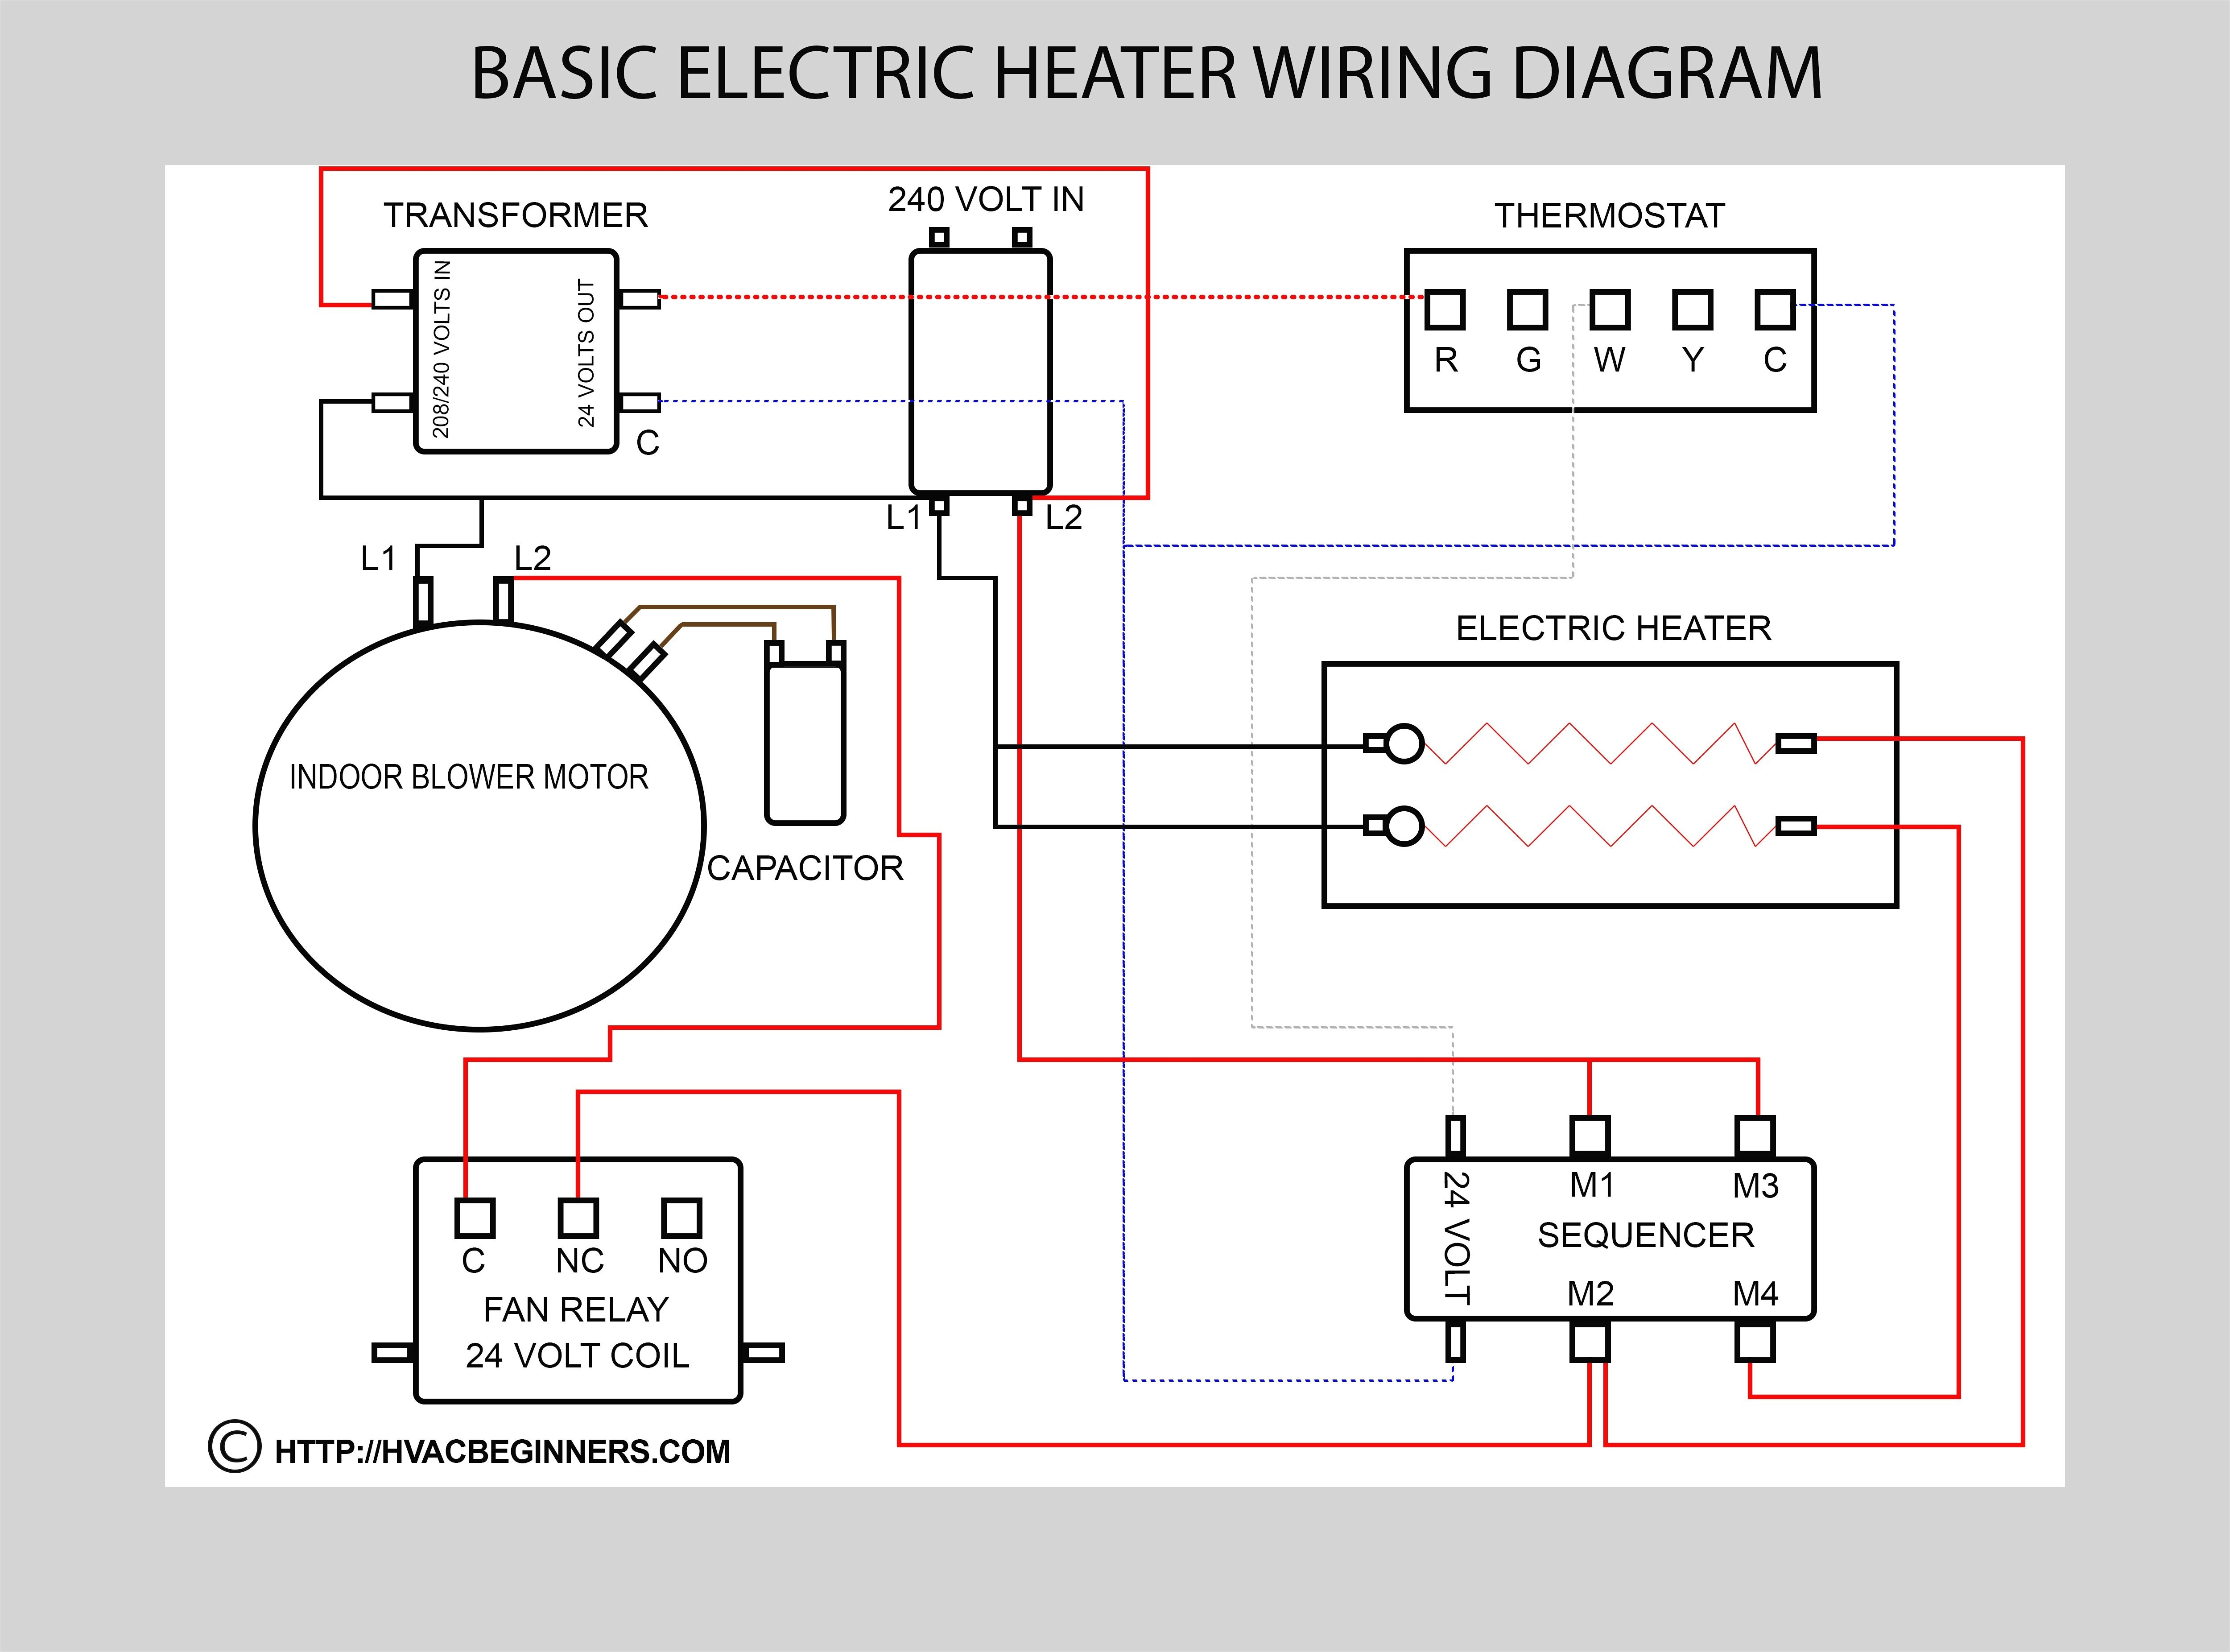 gas furnace wiring diagram Collection-Wiring Diagram for A Gas Furnace Valid General Electric Gas Furnace Wiring Diagram Valid Home Ac 7-b